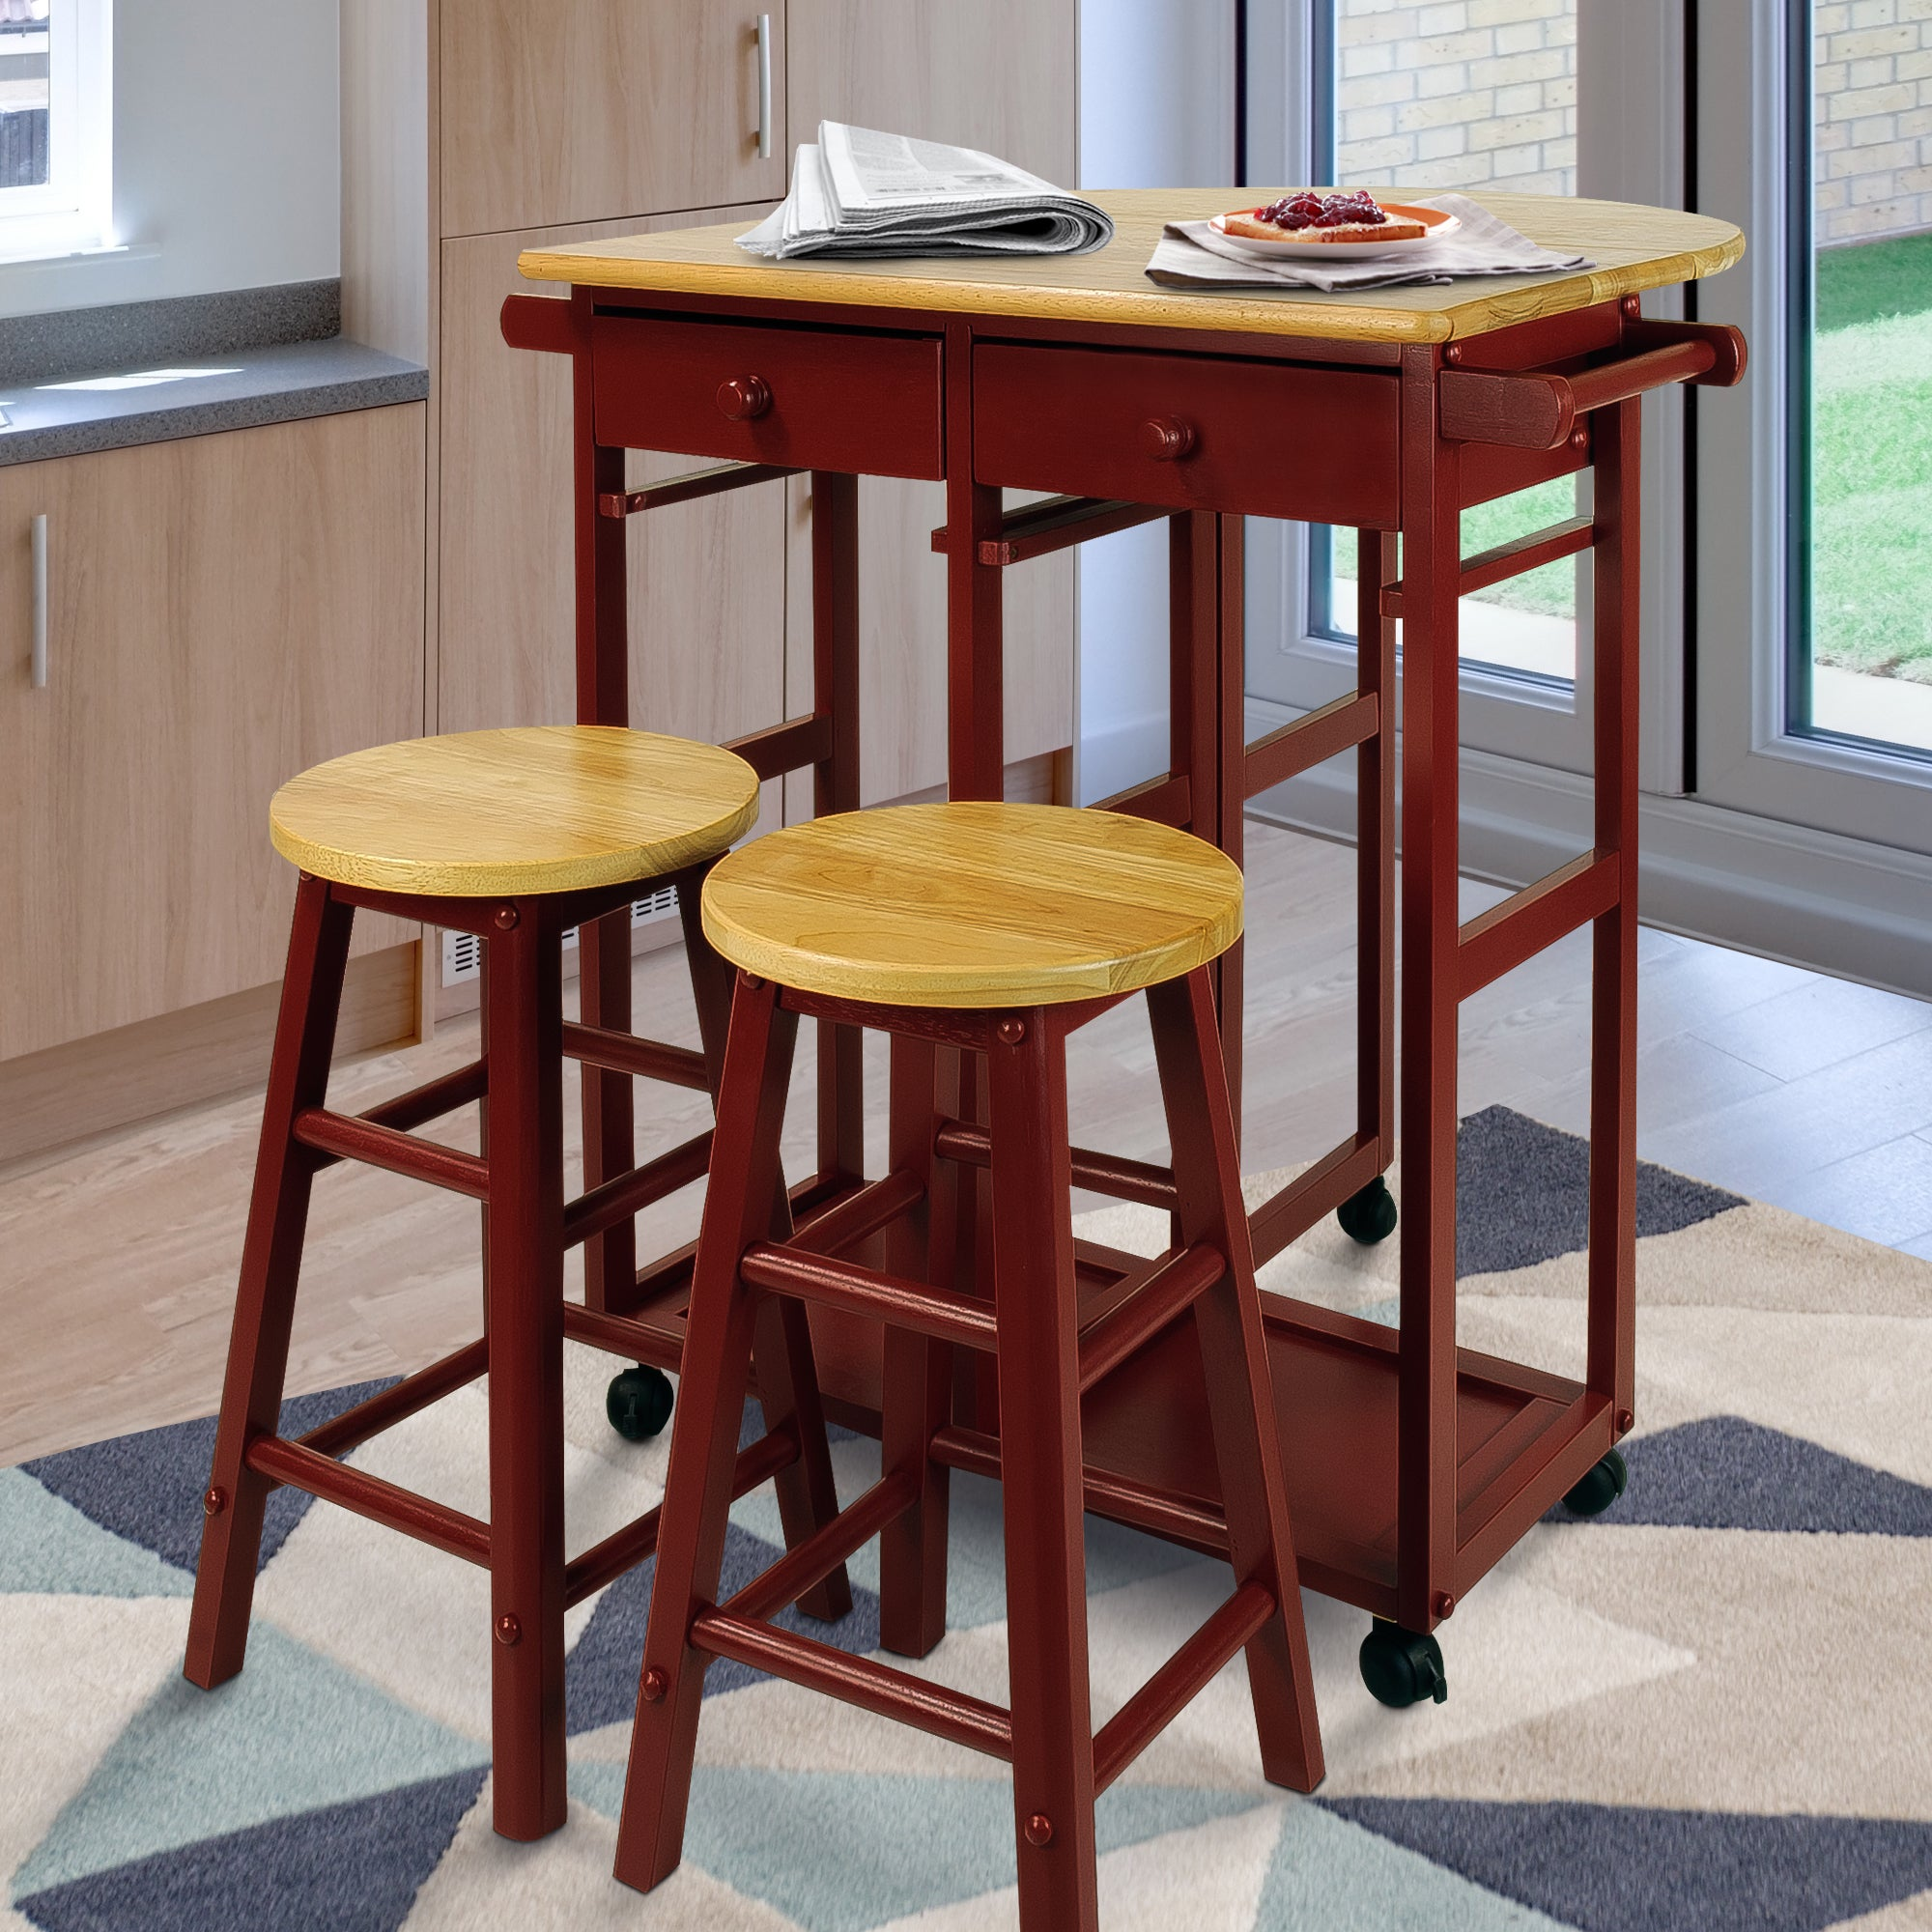 Kitchen Table And Chairs With Wheels: Drop Leaf Table Kitchen Breakfast Cart Dining Room Chairs